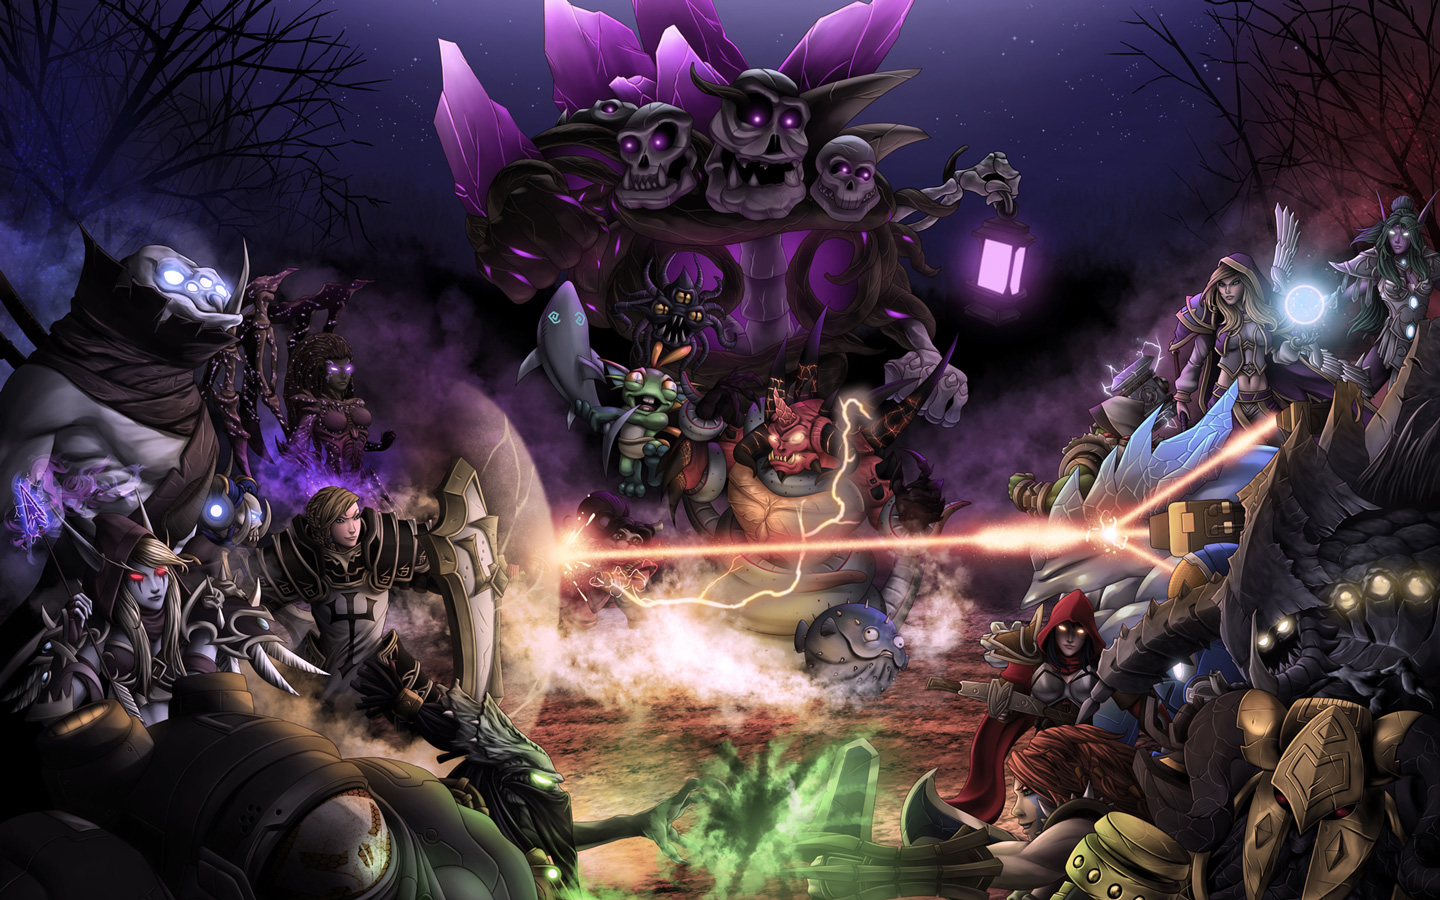 Free Heroes of the Storm Wallpaper in 1440x900